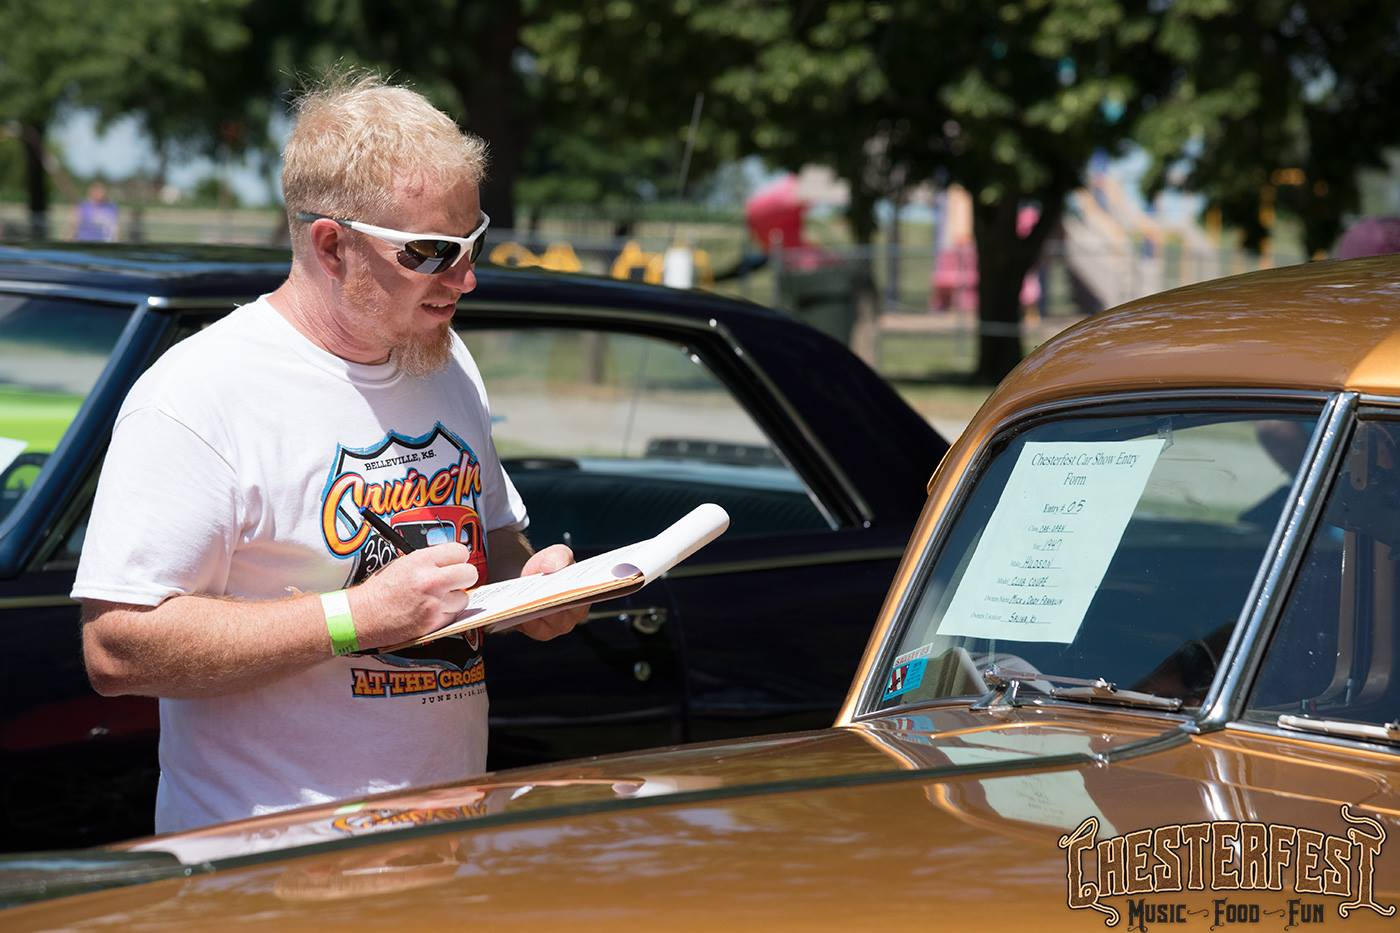 Judging at Chesterfest Car Show